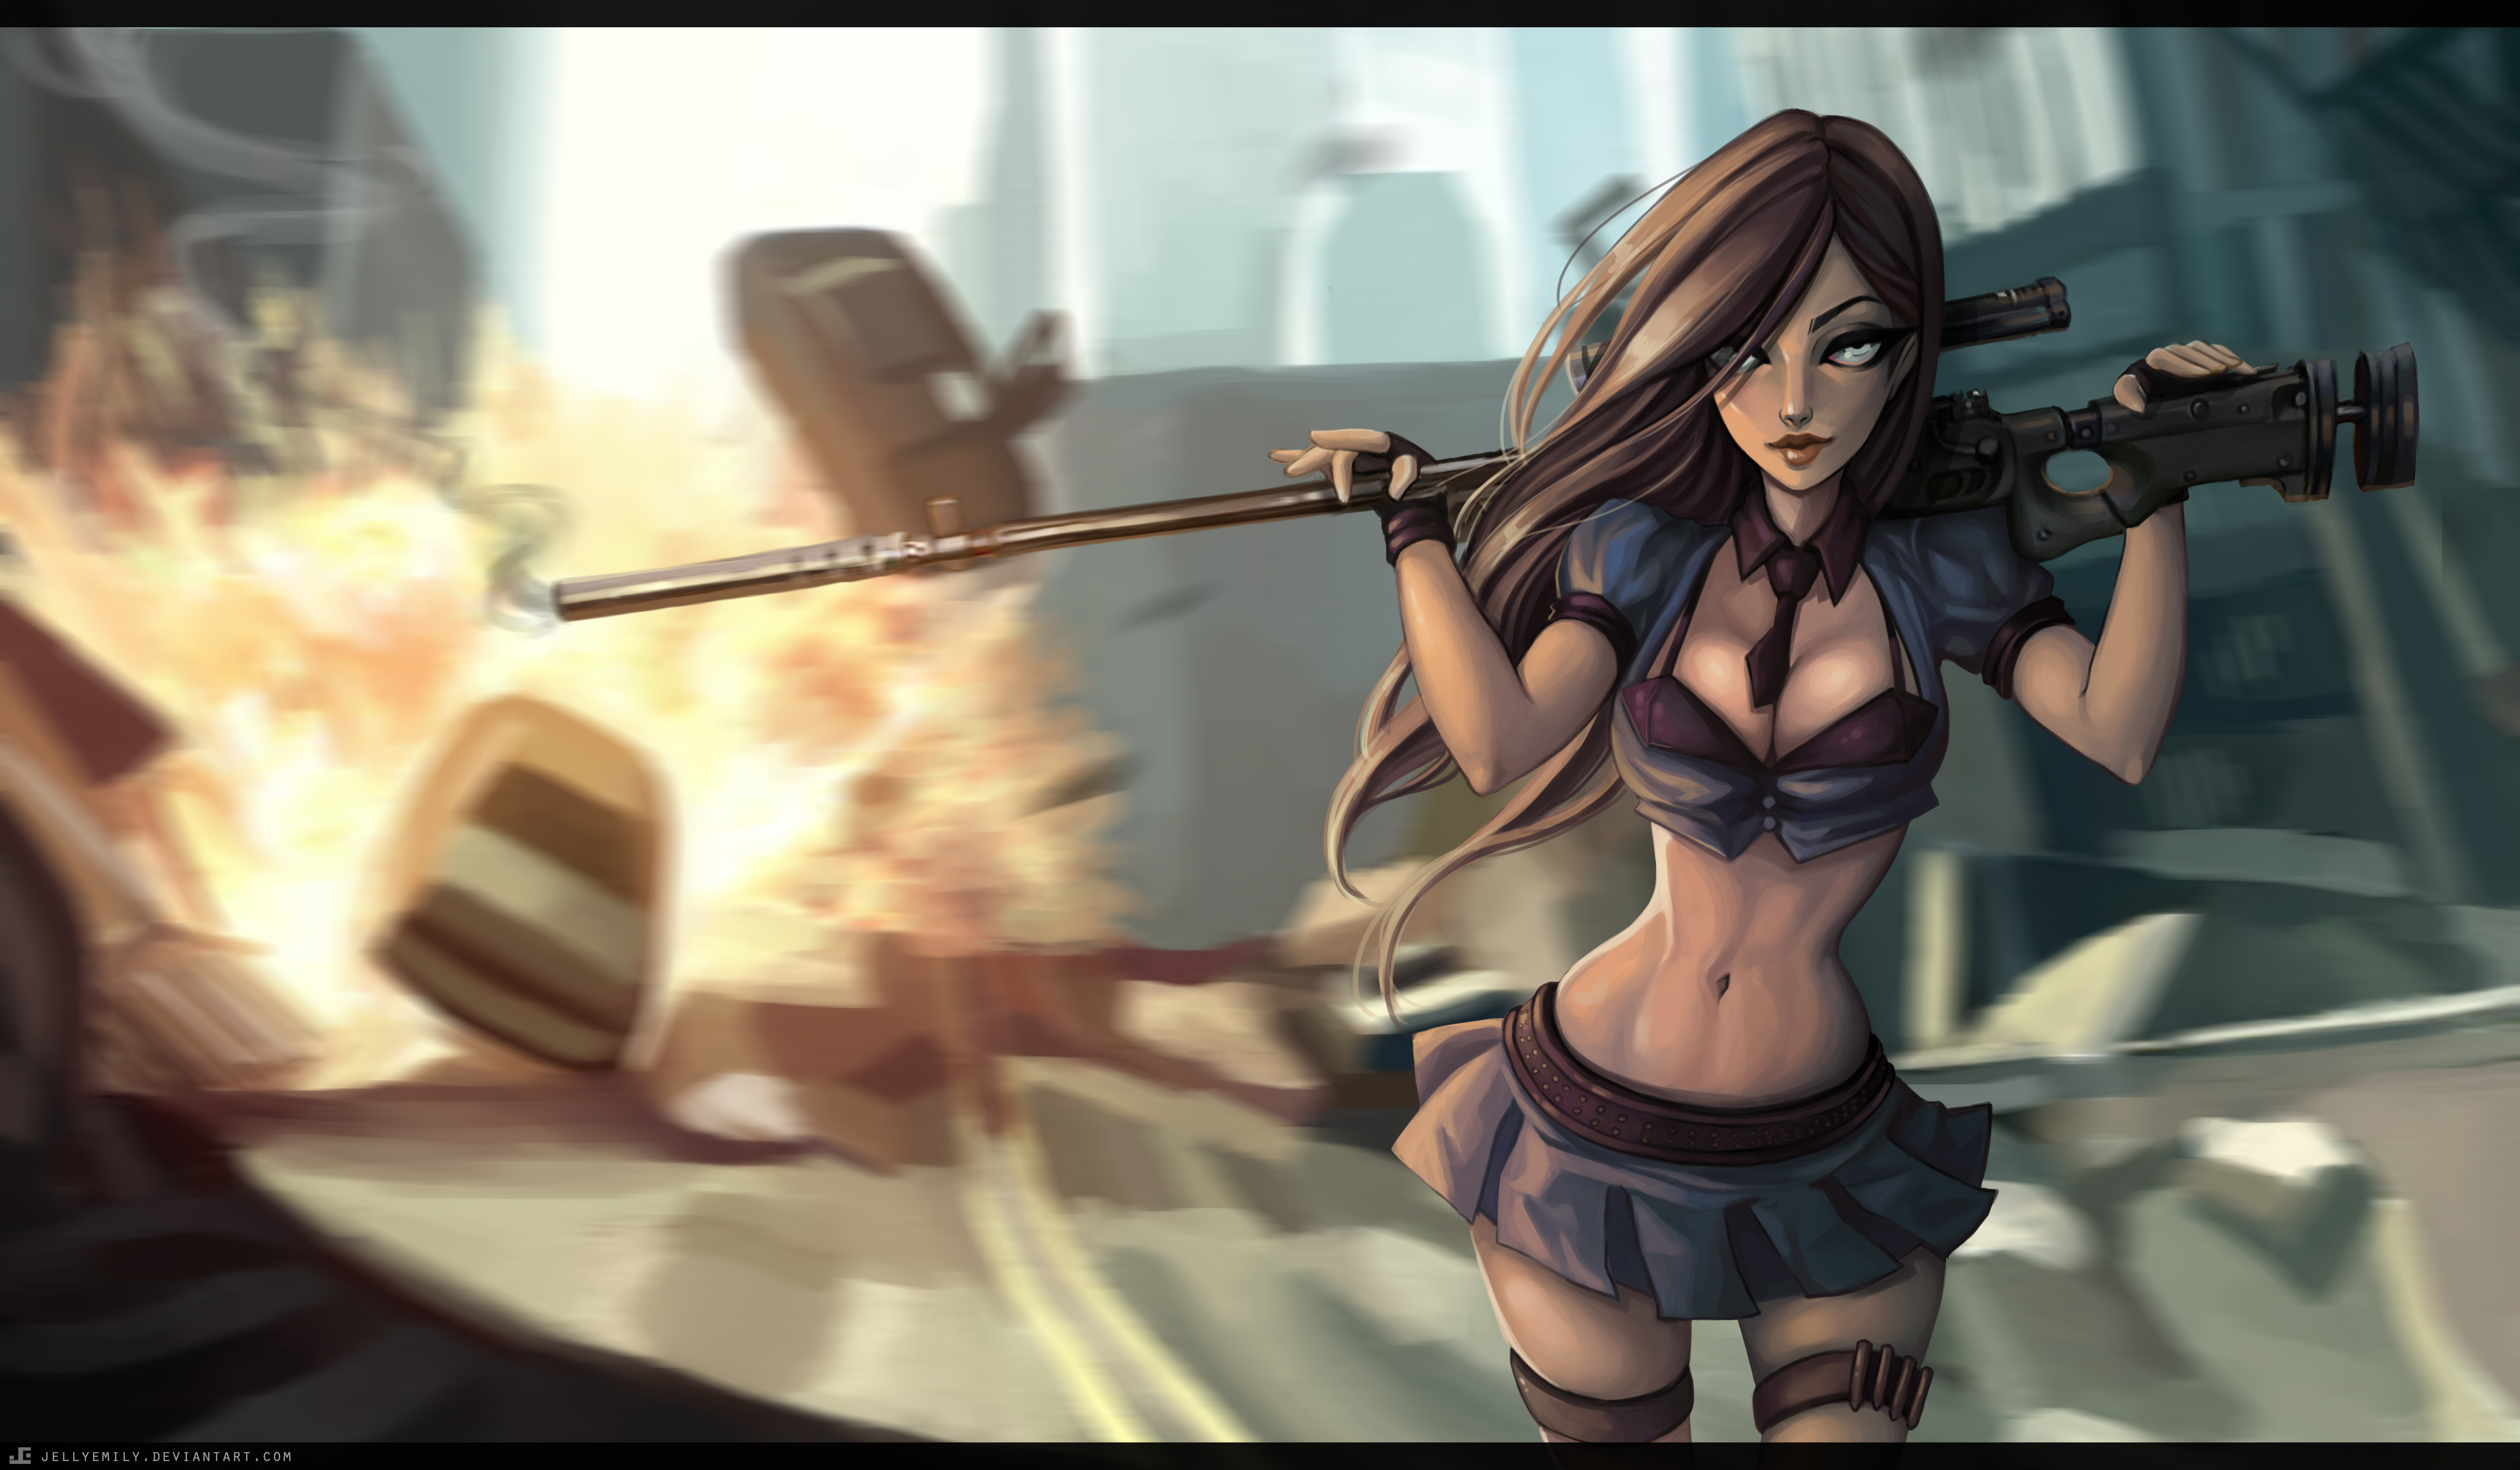 Free Download Caitlyn Lol Wallpapers 7200x4200 For Your Desktop